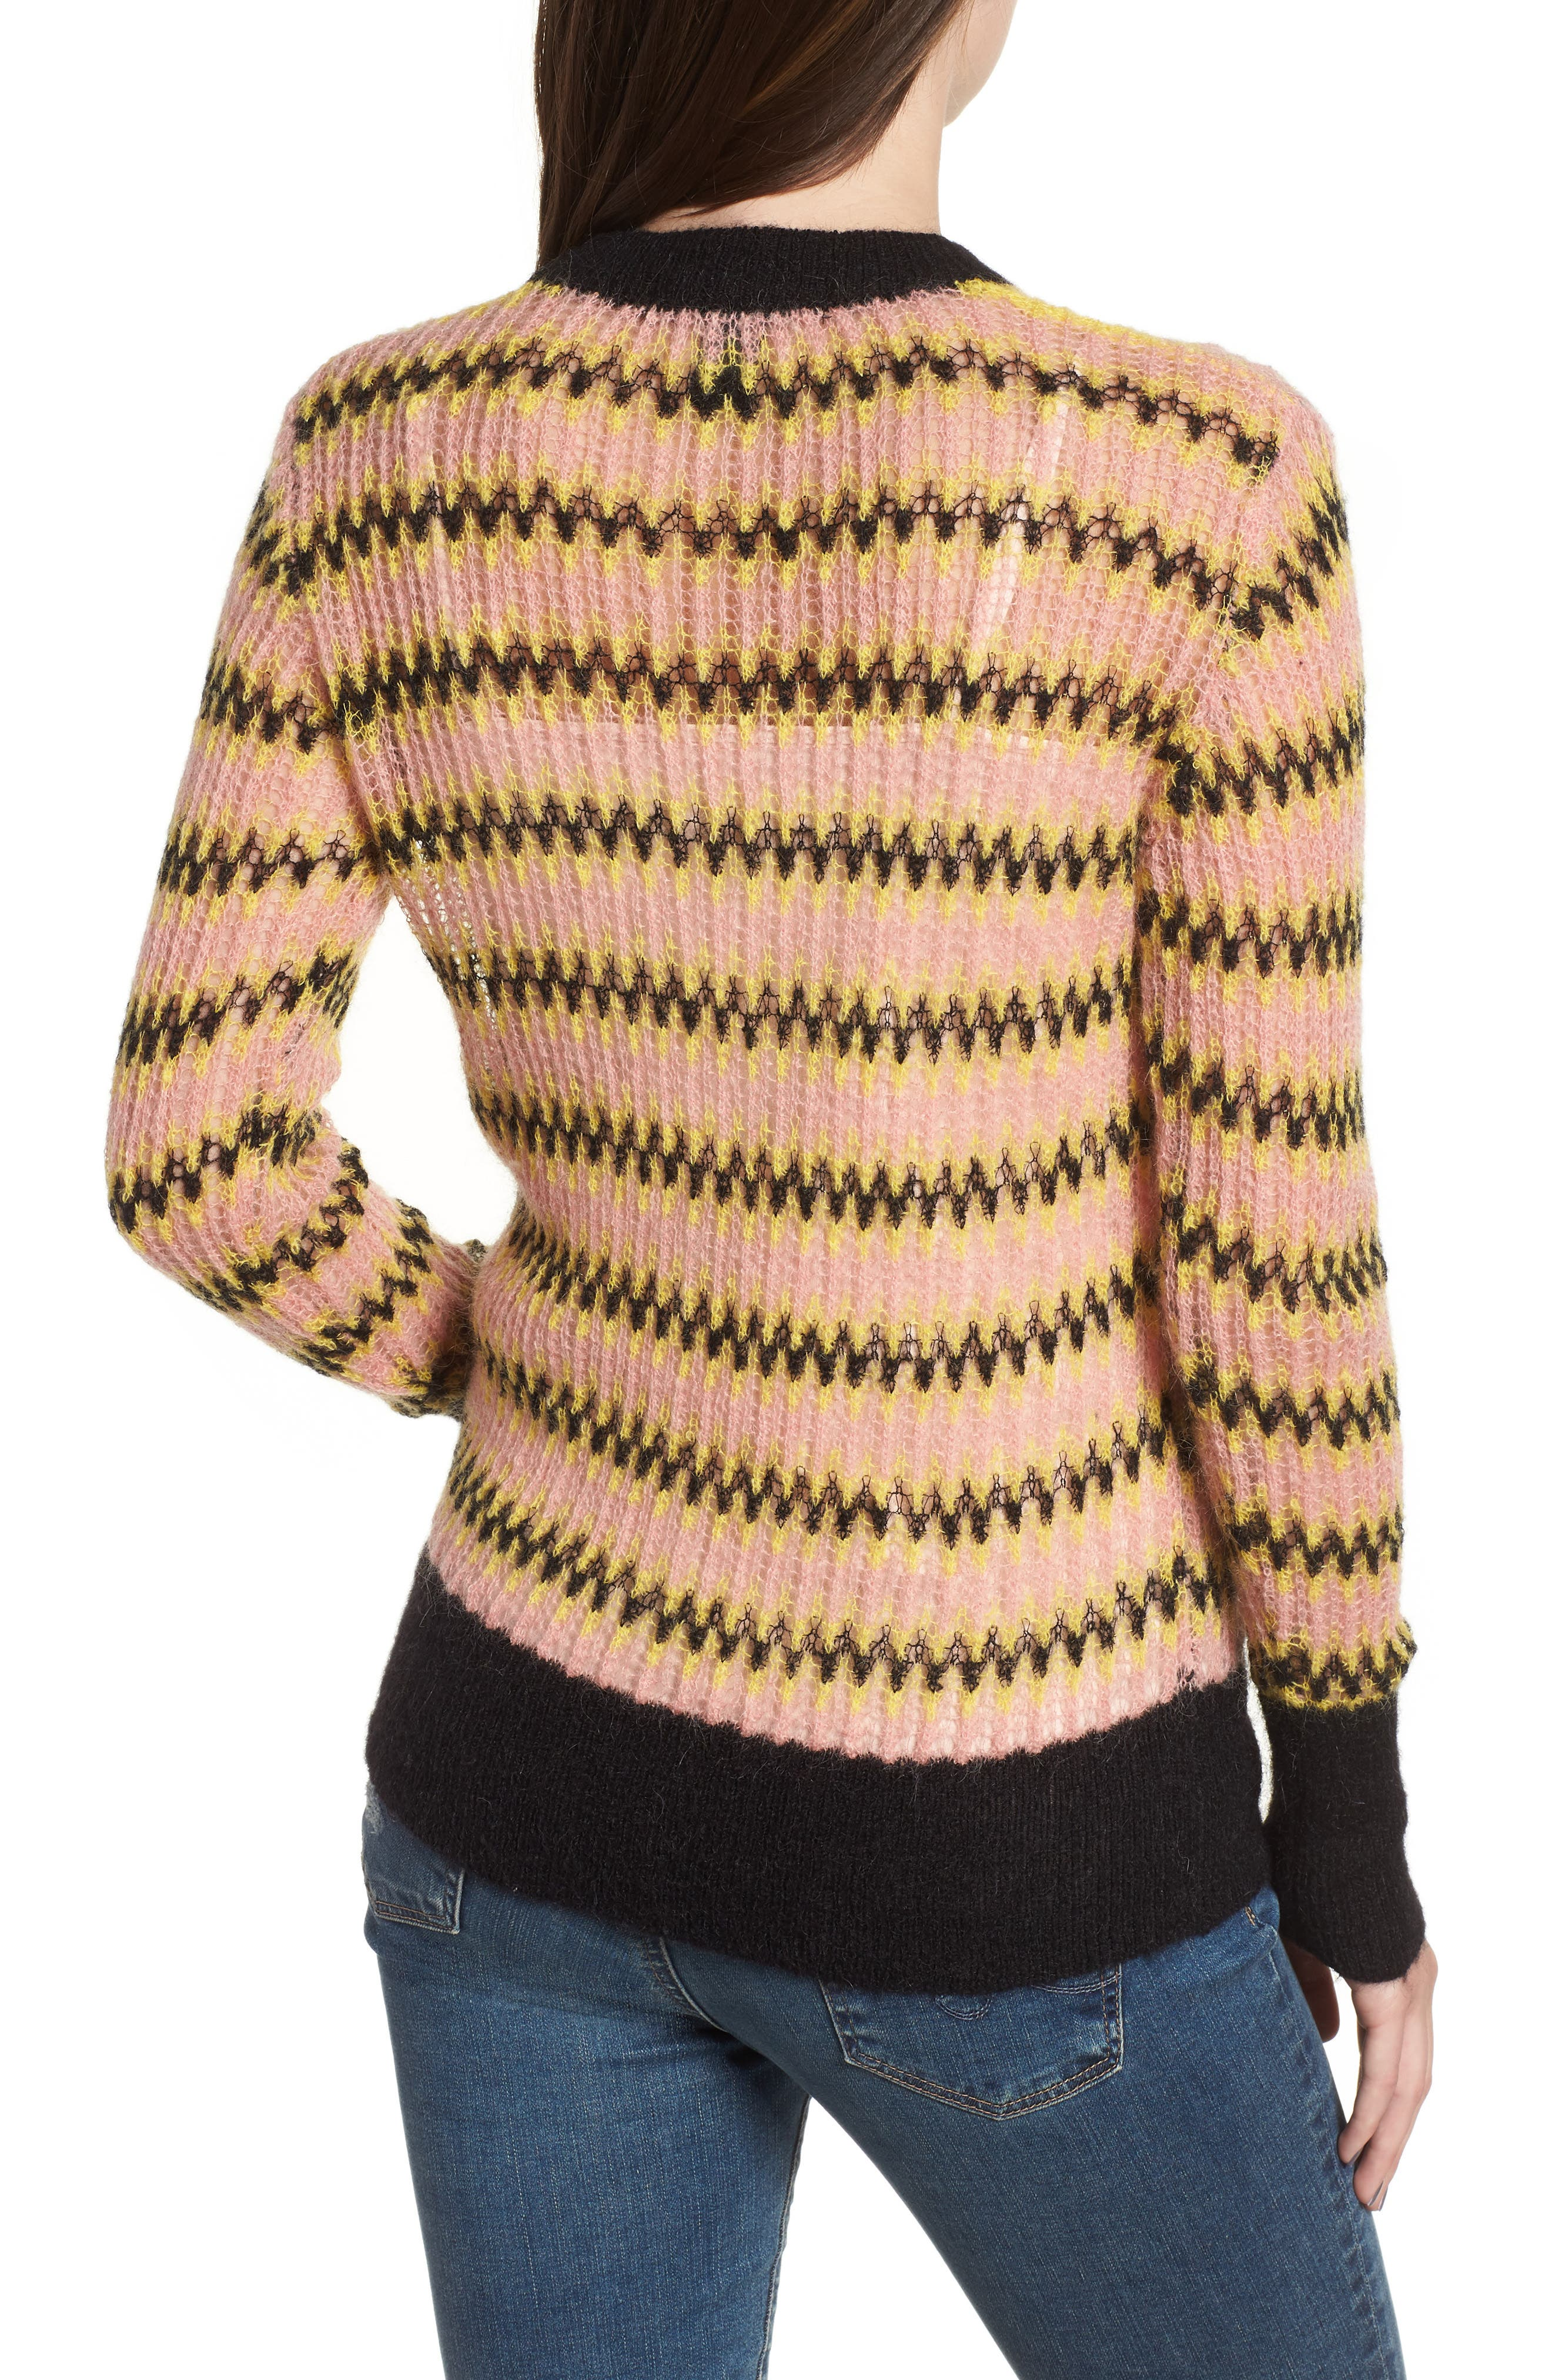 Zig Zag Wool Blend Sweater,                             Alternate thumbnail 2, color,                             700